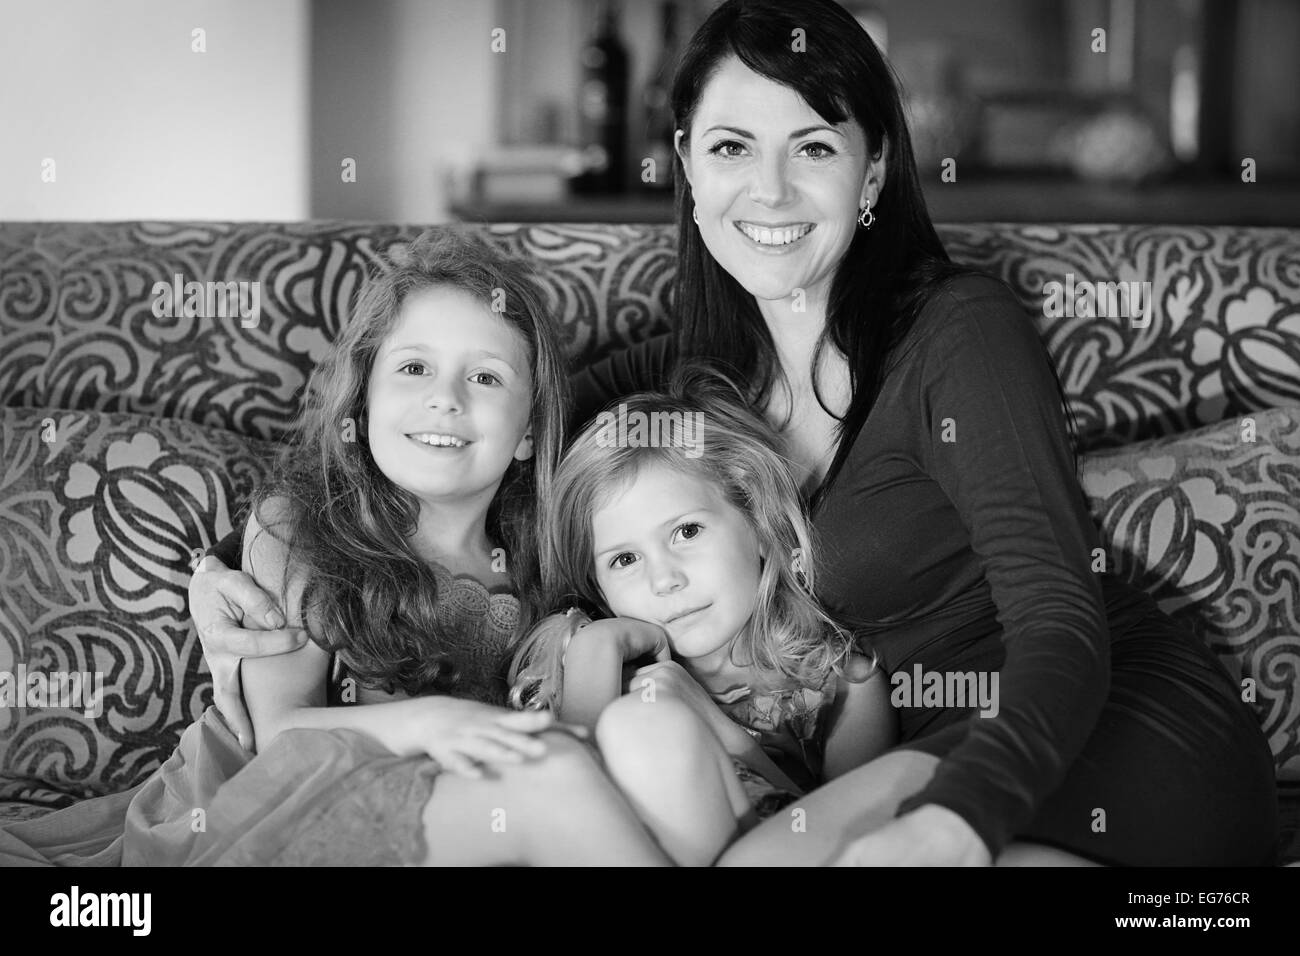 Single mom and her two pretty daughters - Stock Image